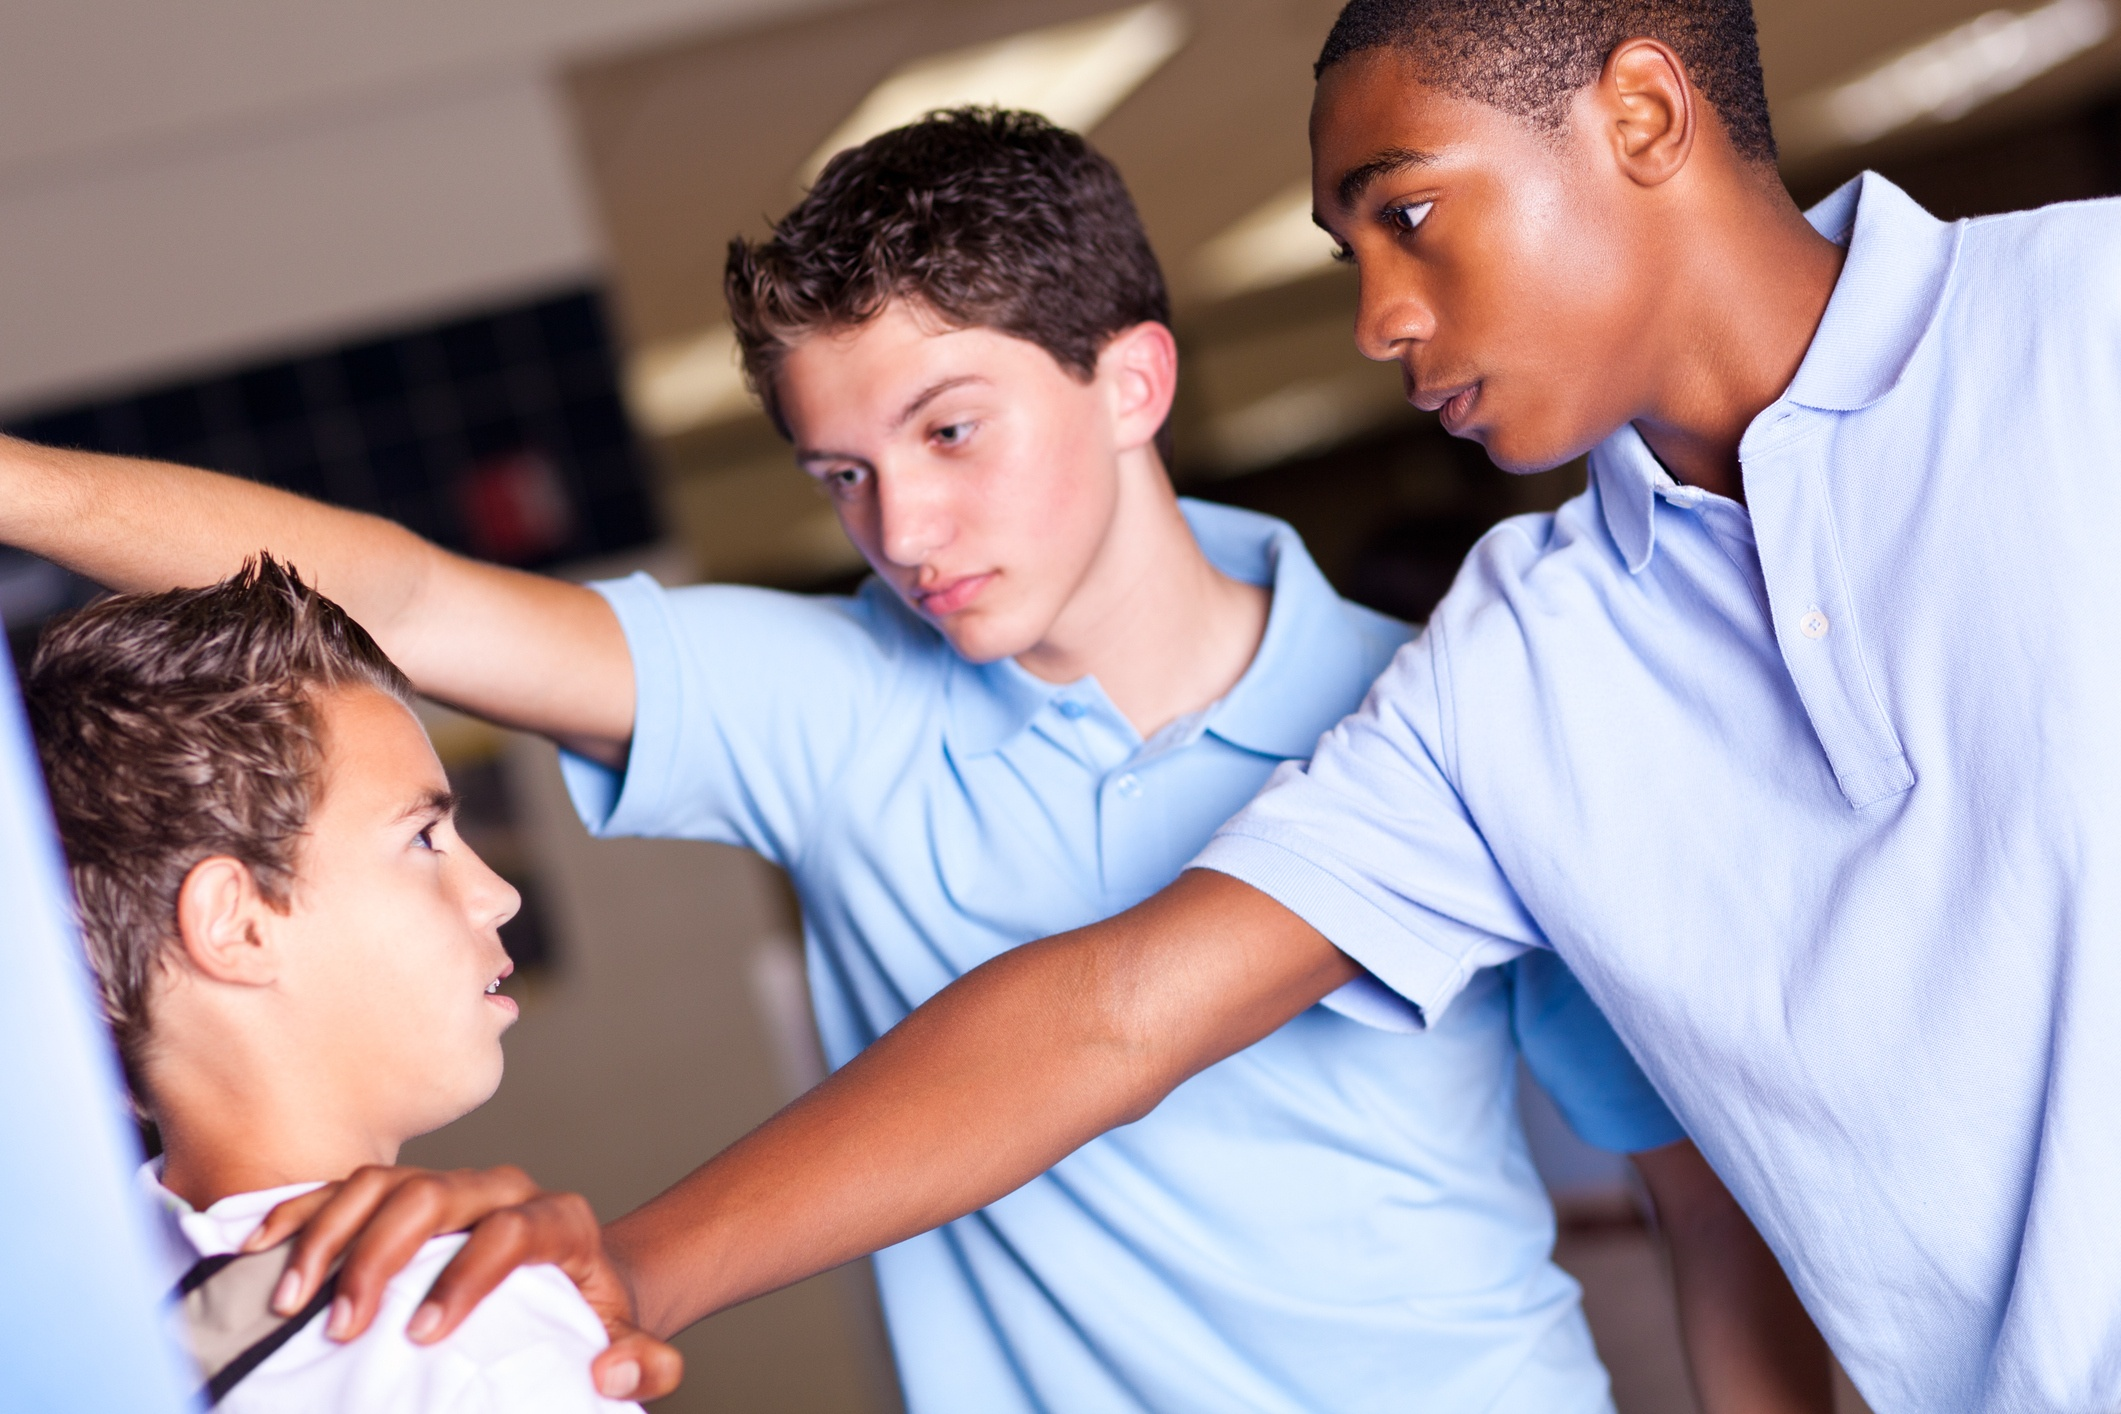 Boys bullying another student